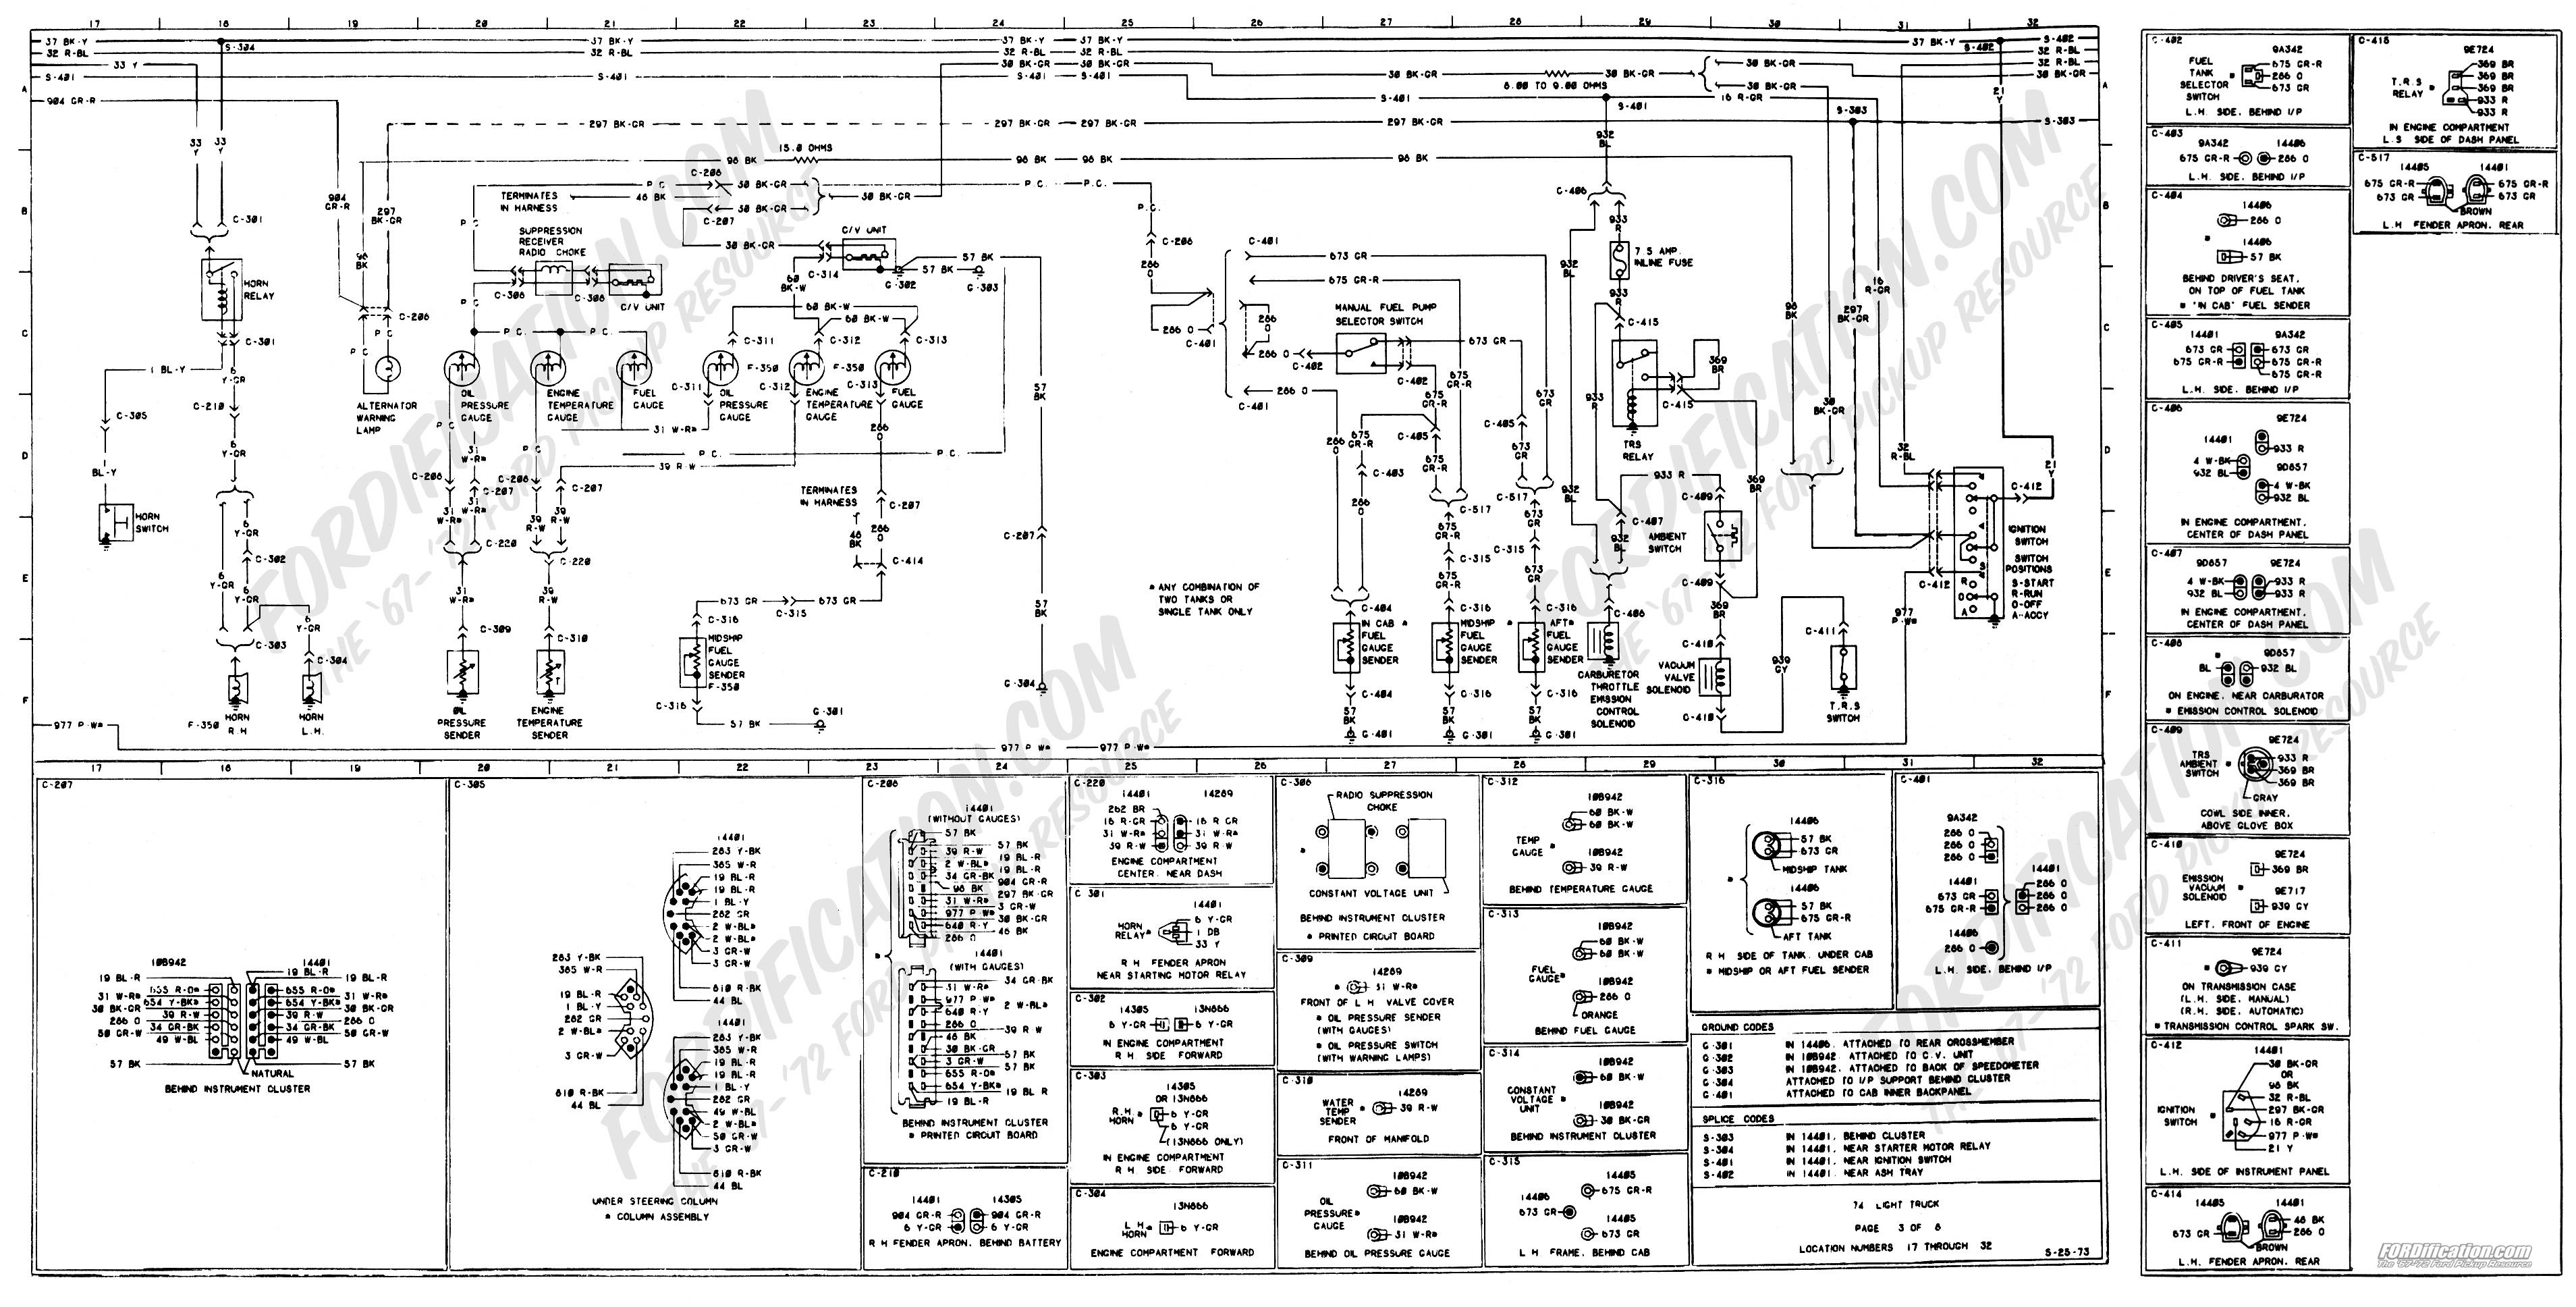 International 8500 Fuse Box Diagram ford Truck Wire Diagram F 350 Diesel 94 Of International 8500 Fuse Box Diagram